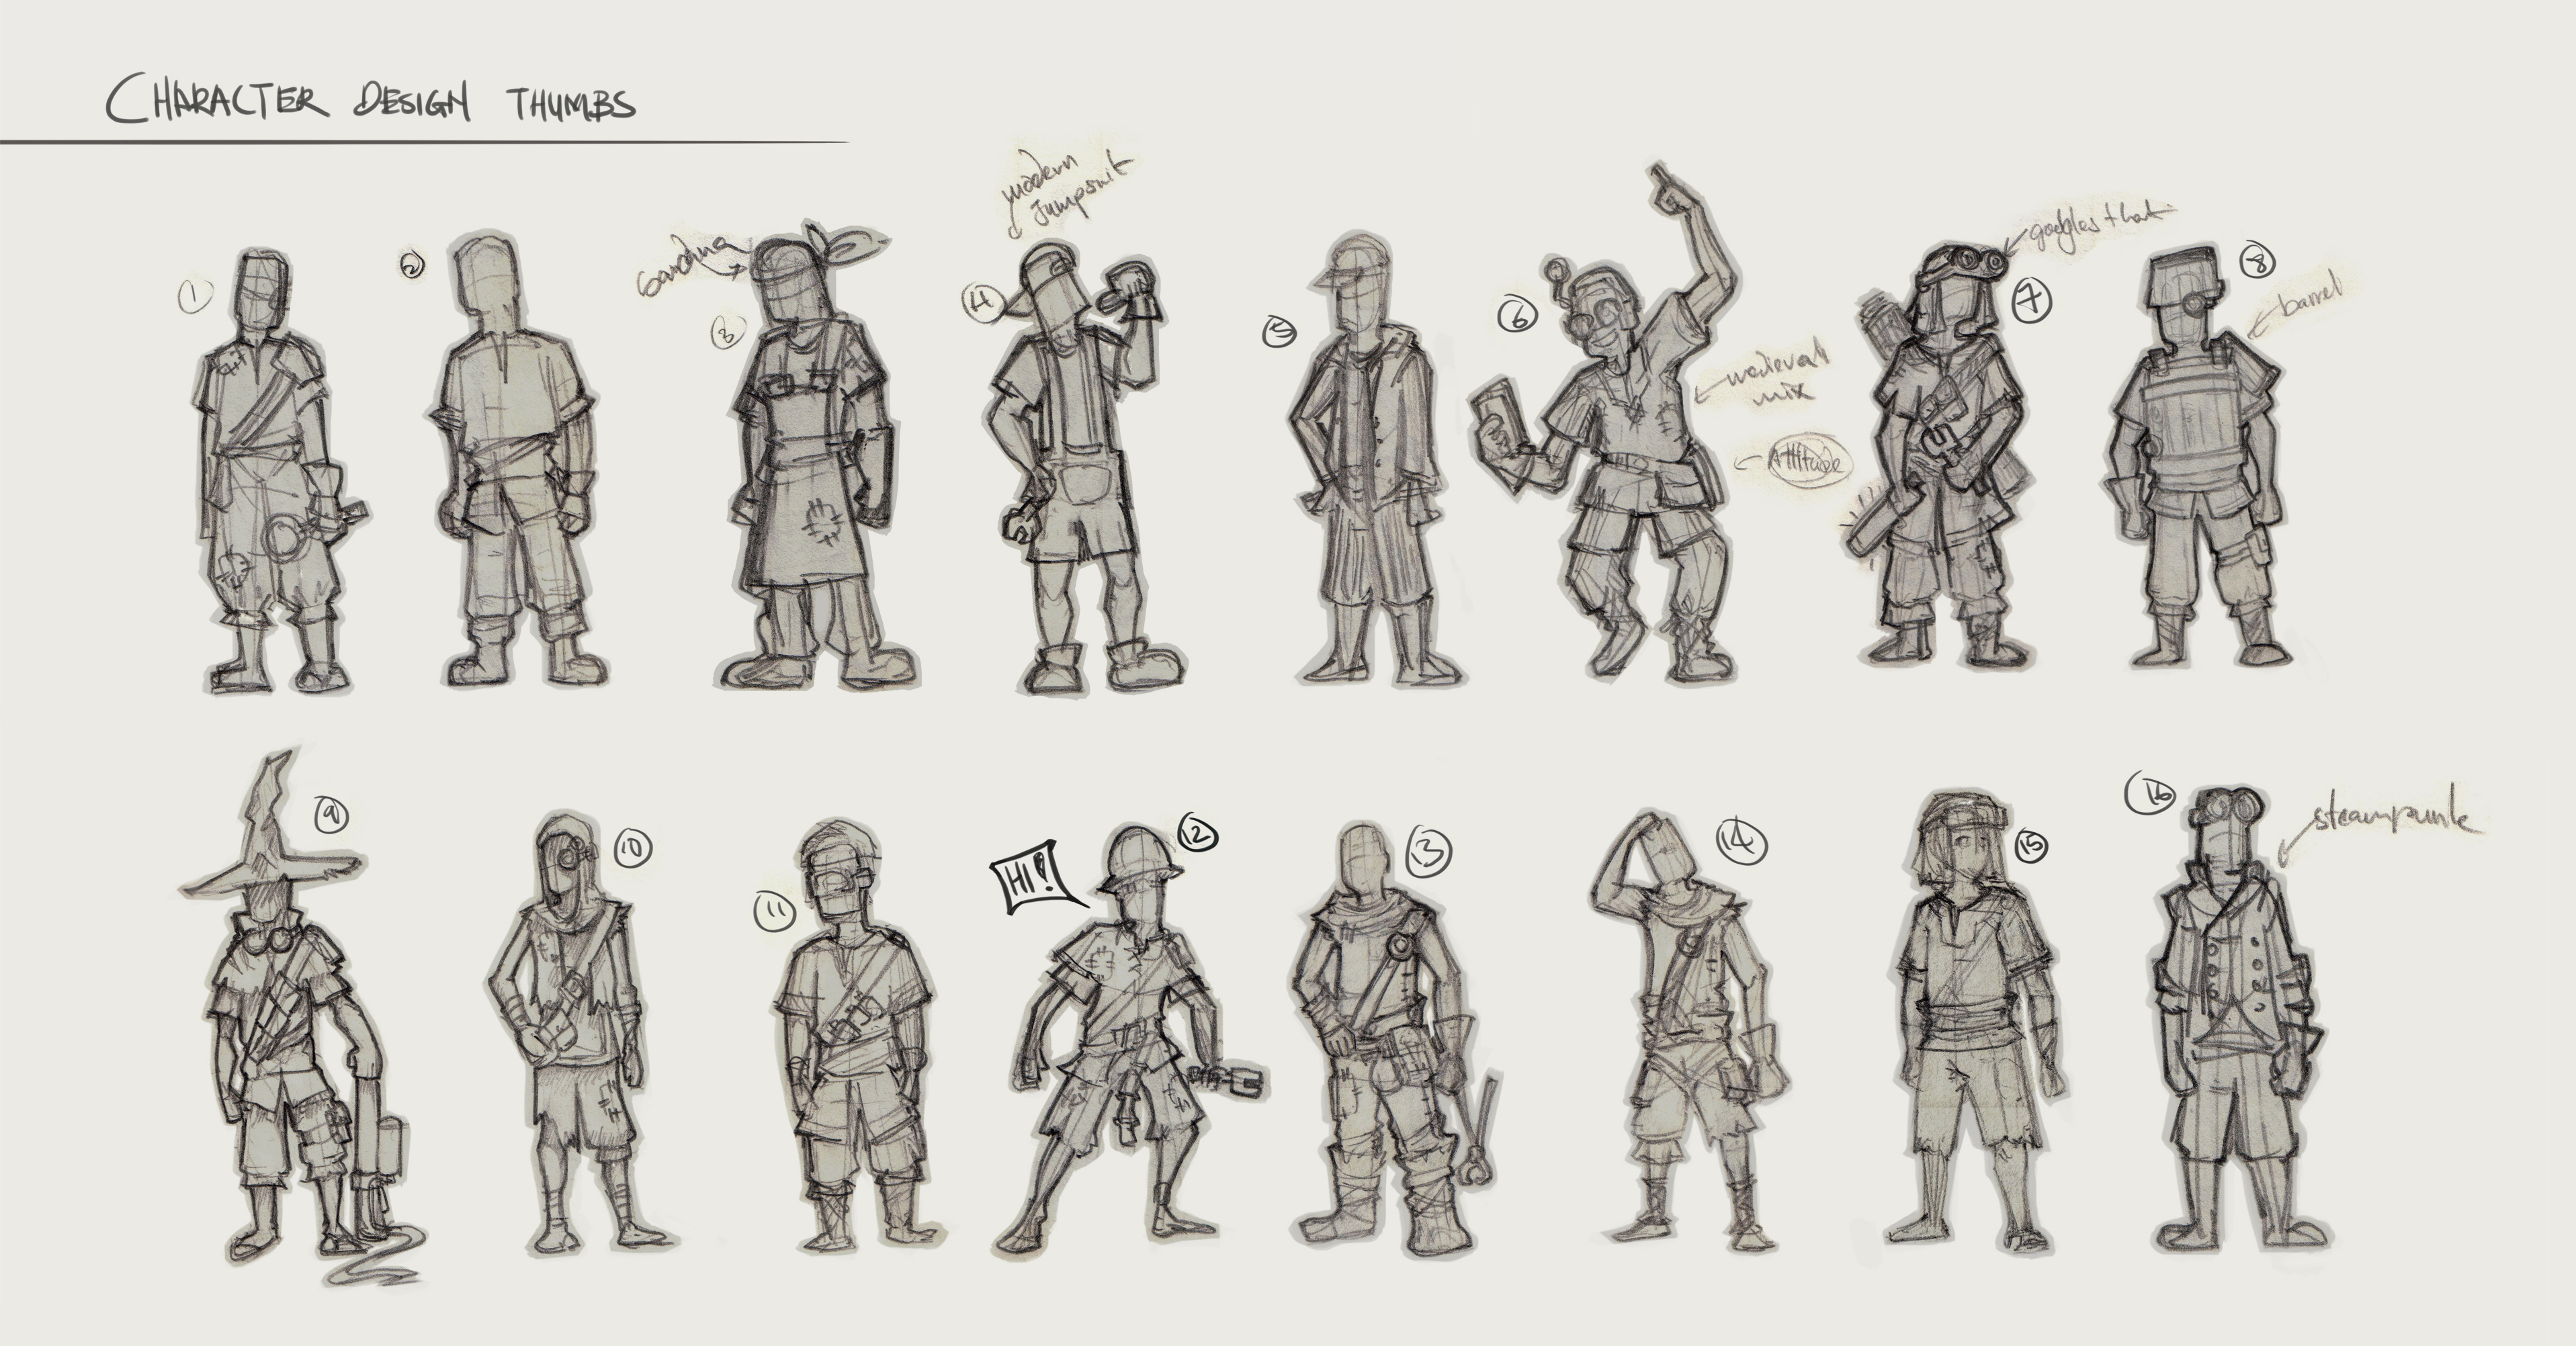 Zillionarts Character Design : Character design thumbs by sourshade on deviantart